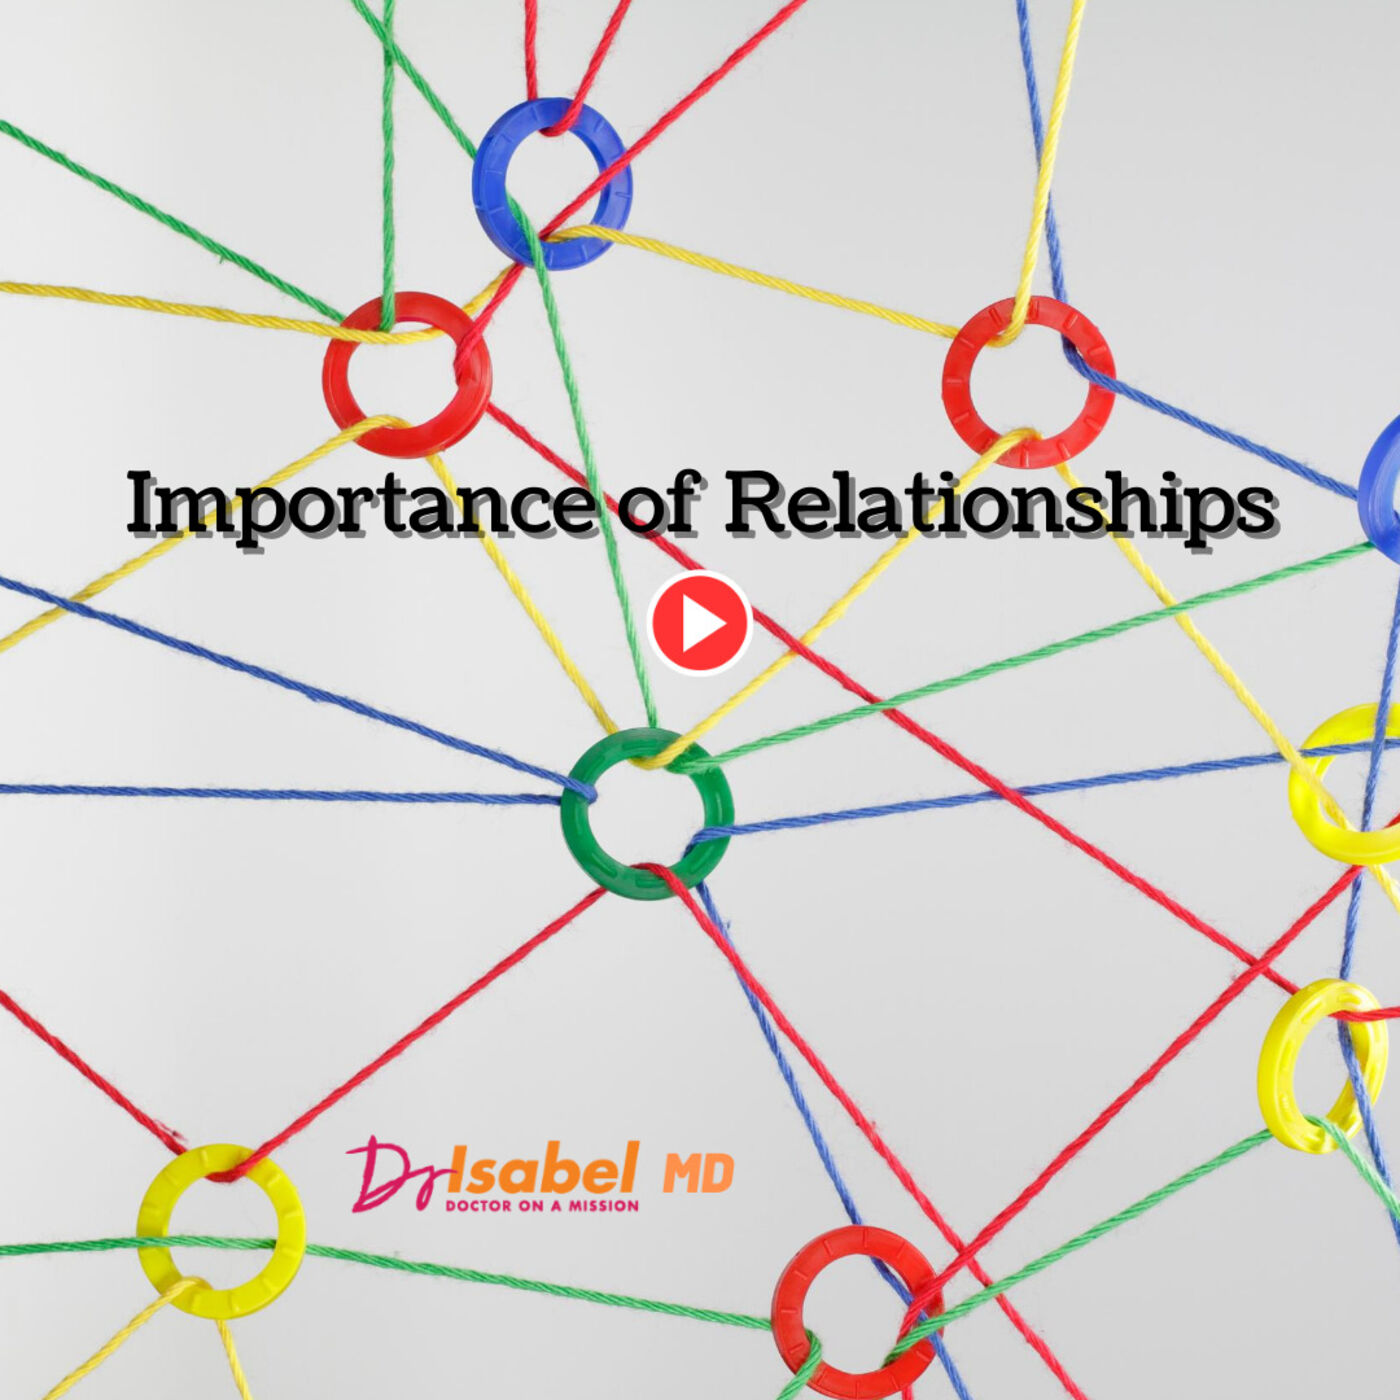 Importance of Relationships